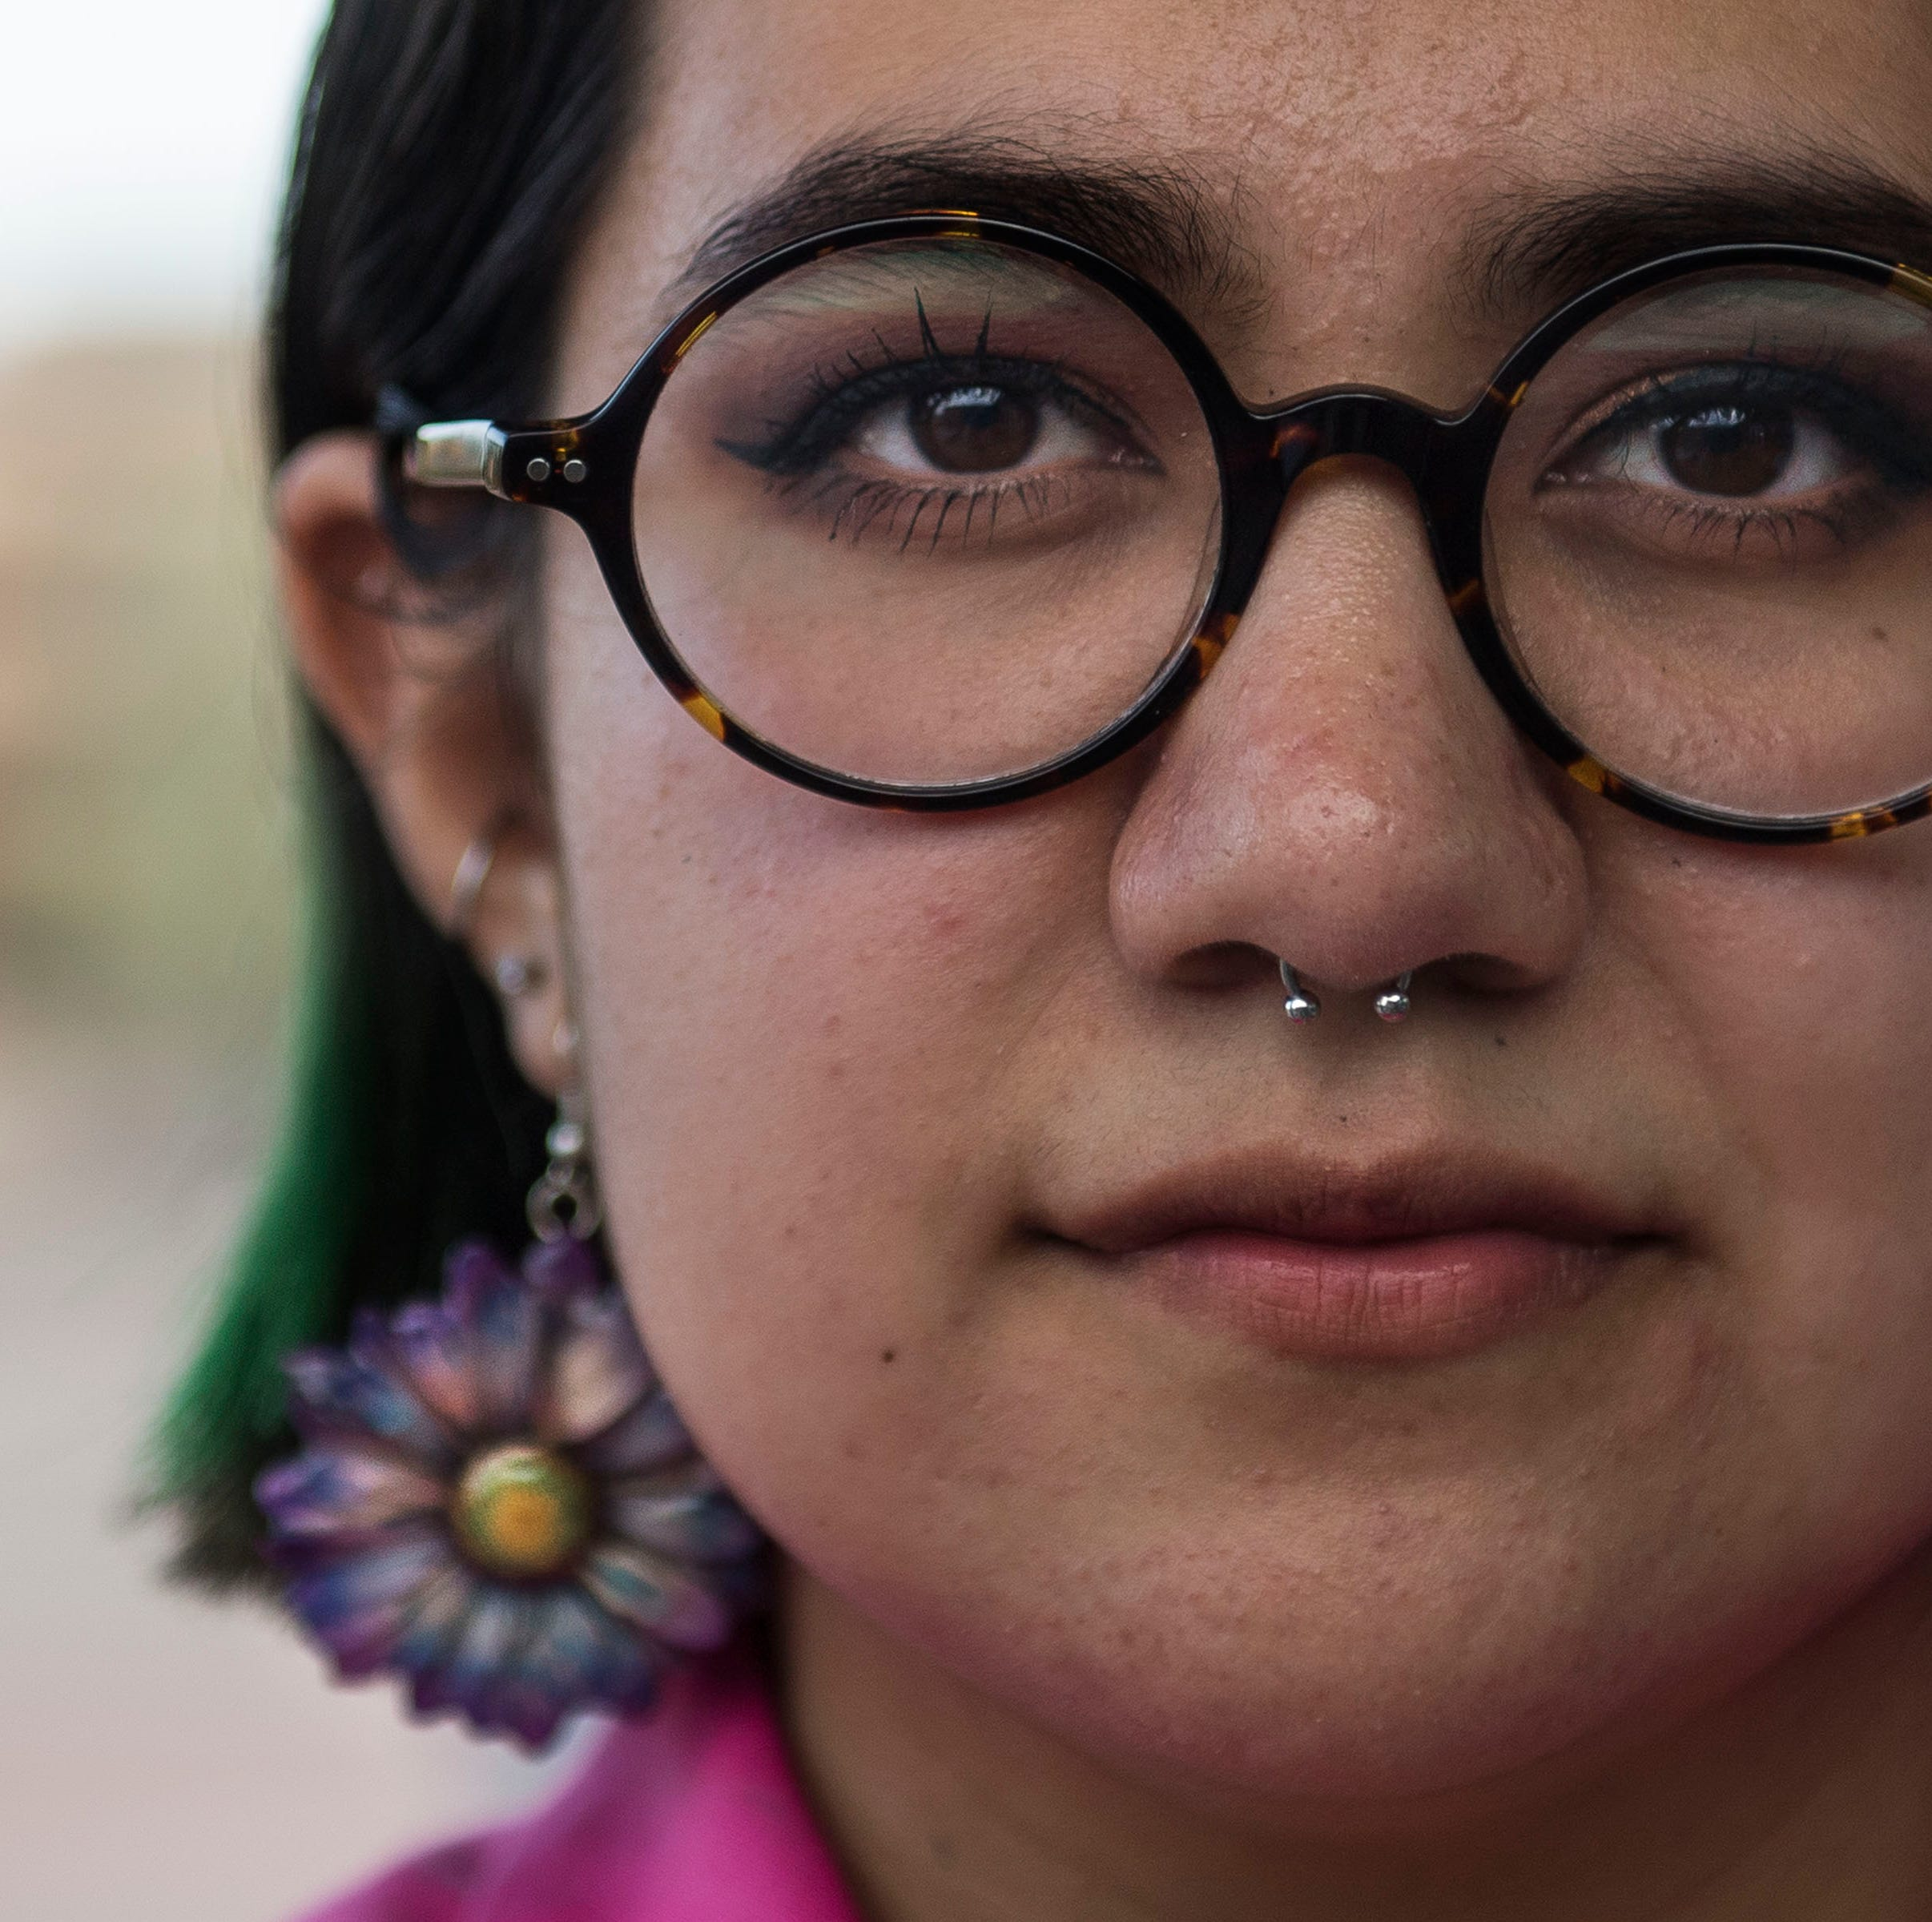 One DREAMer's journey takes her from the border to graduation at Colorado State University